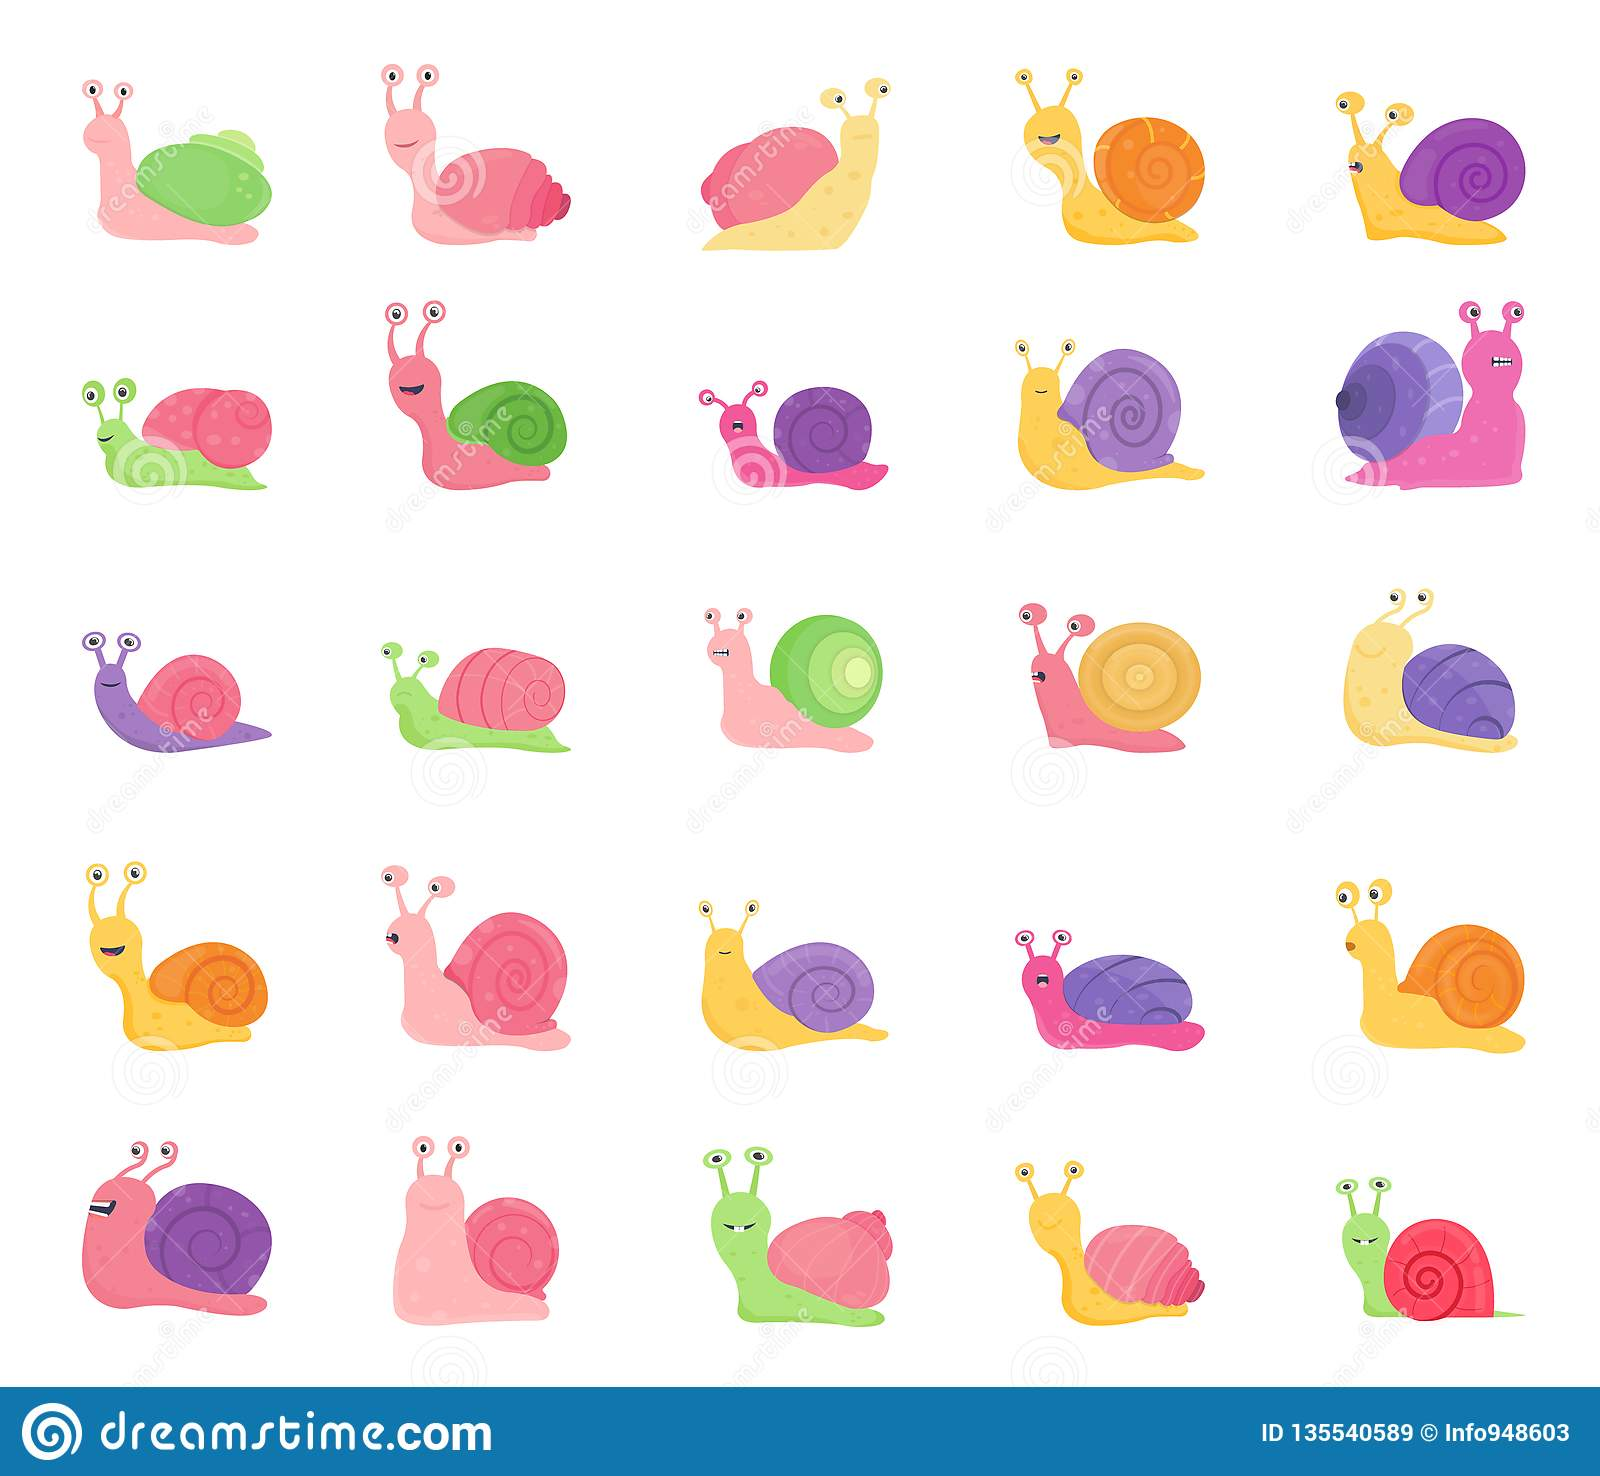 Set of Color Snail Icons isolated on white background